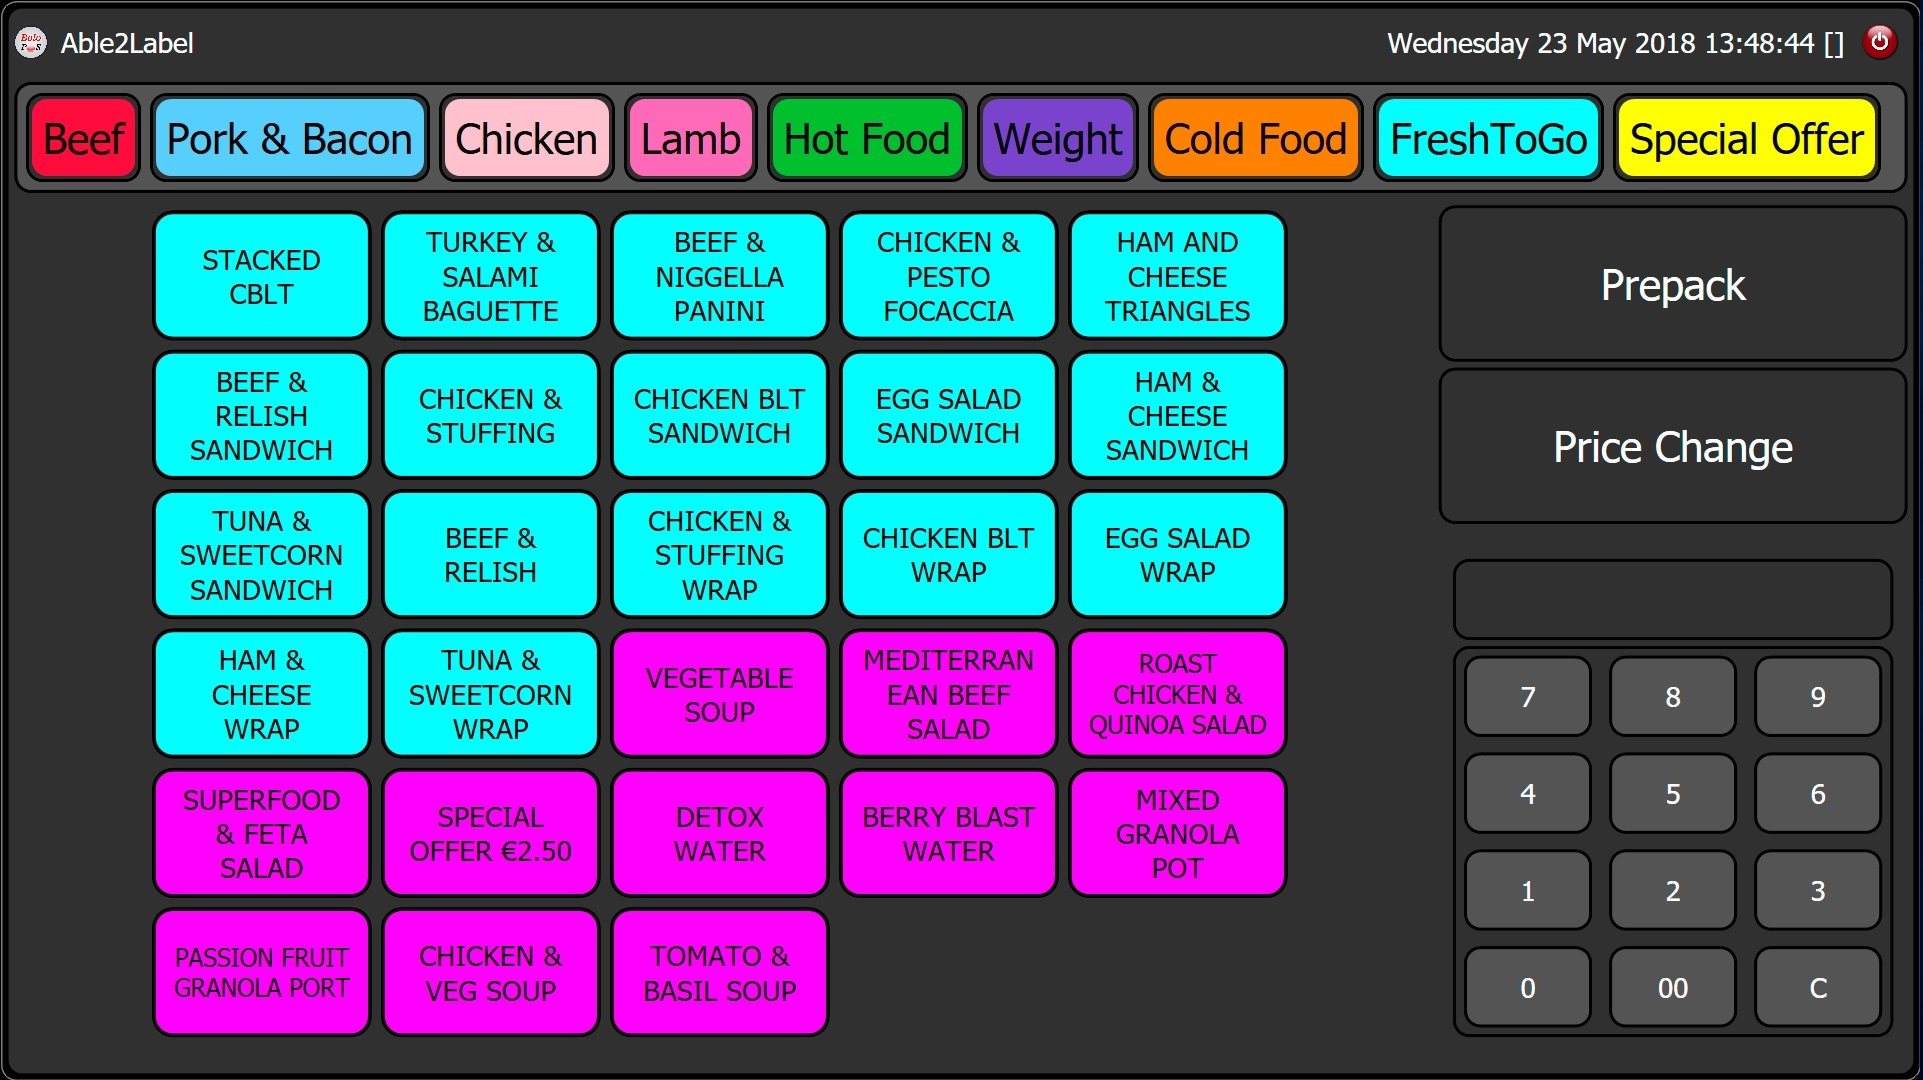 A sample screen of fresh-to-go products on Able2Label